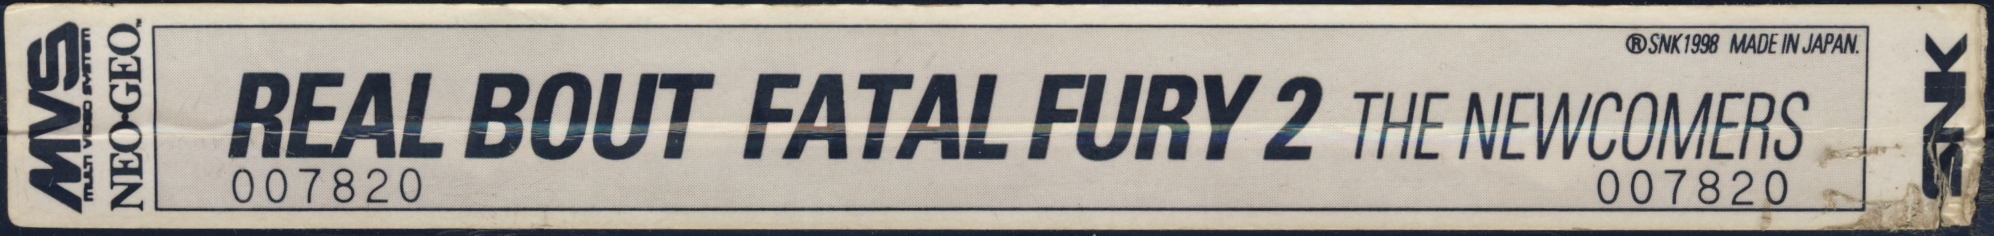 Real bout fatal fury 2 us label.jpg